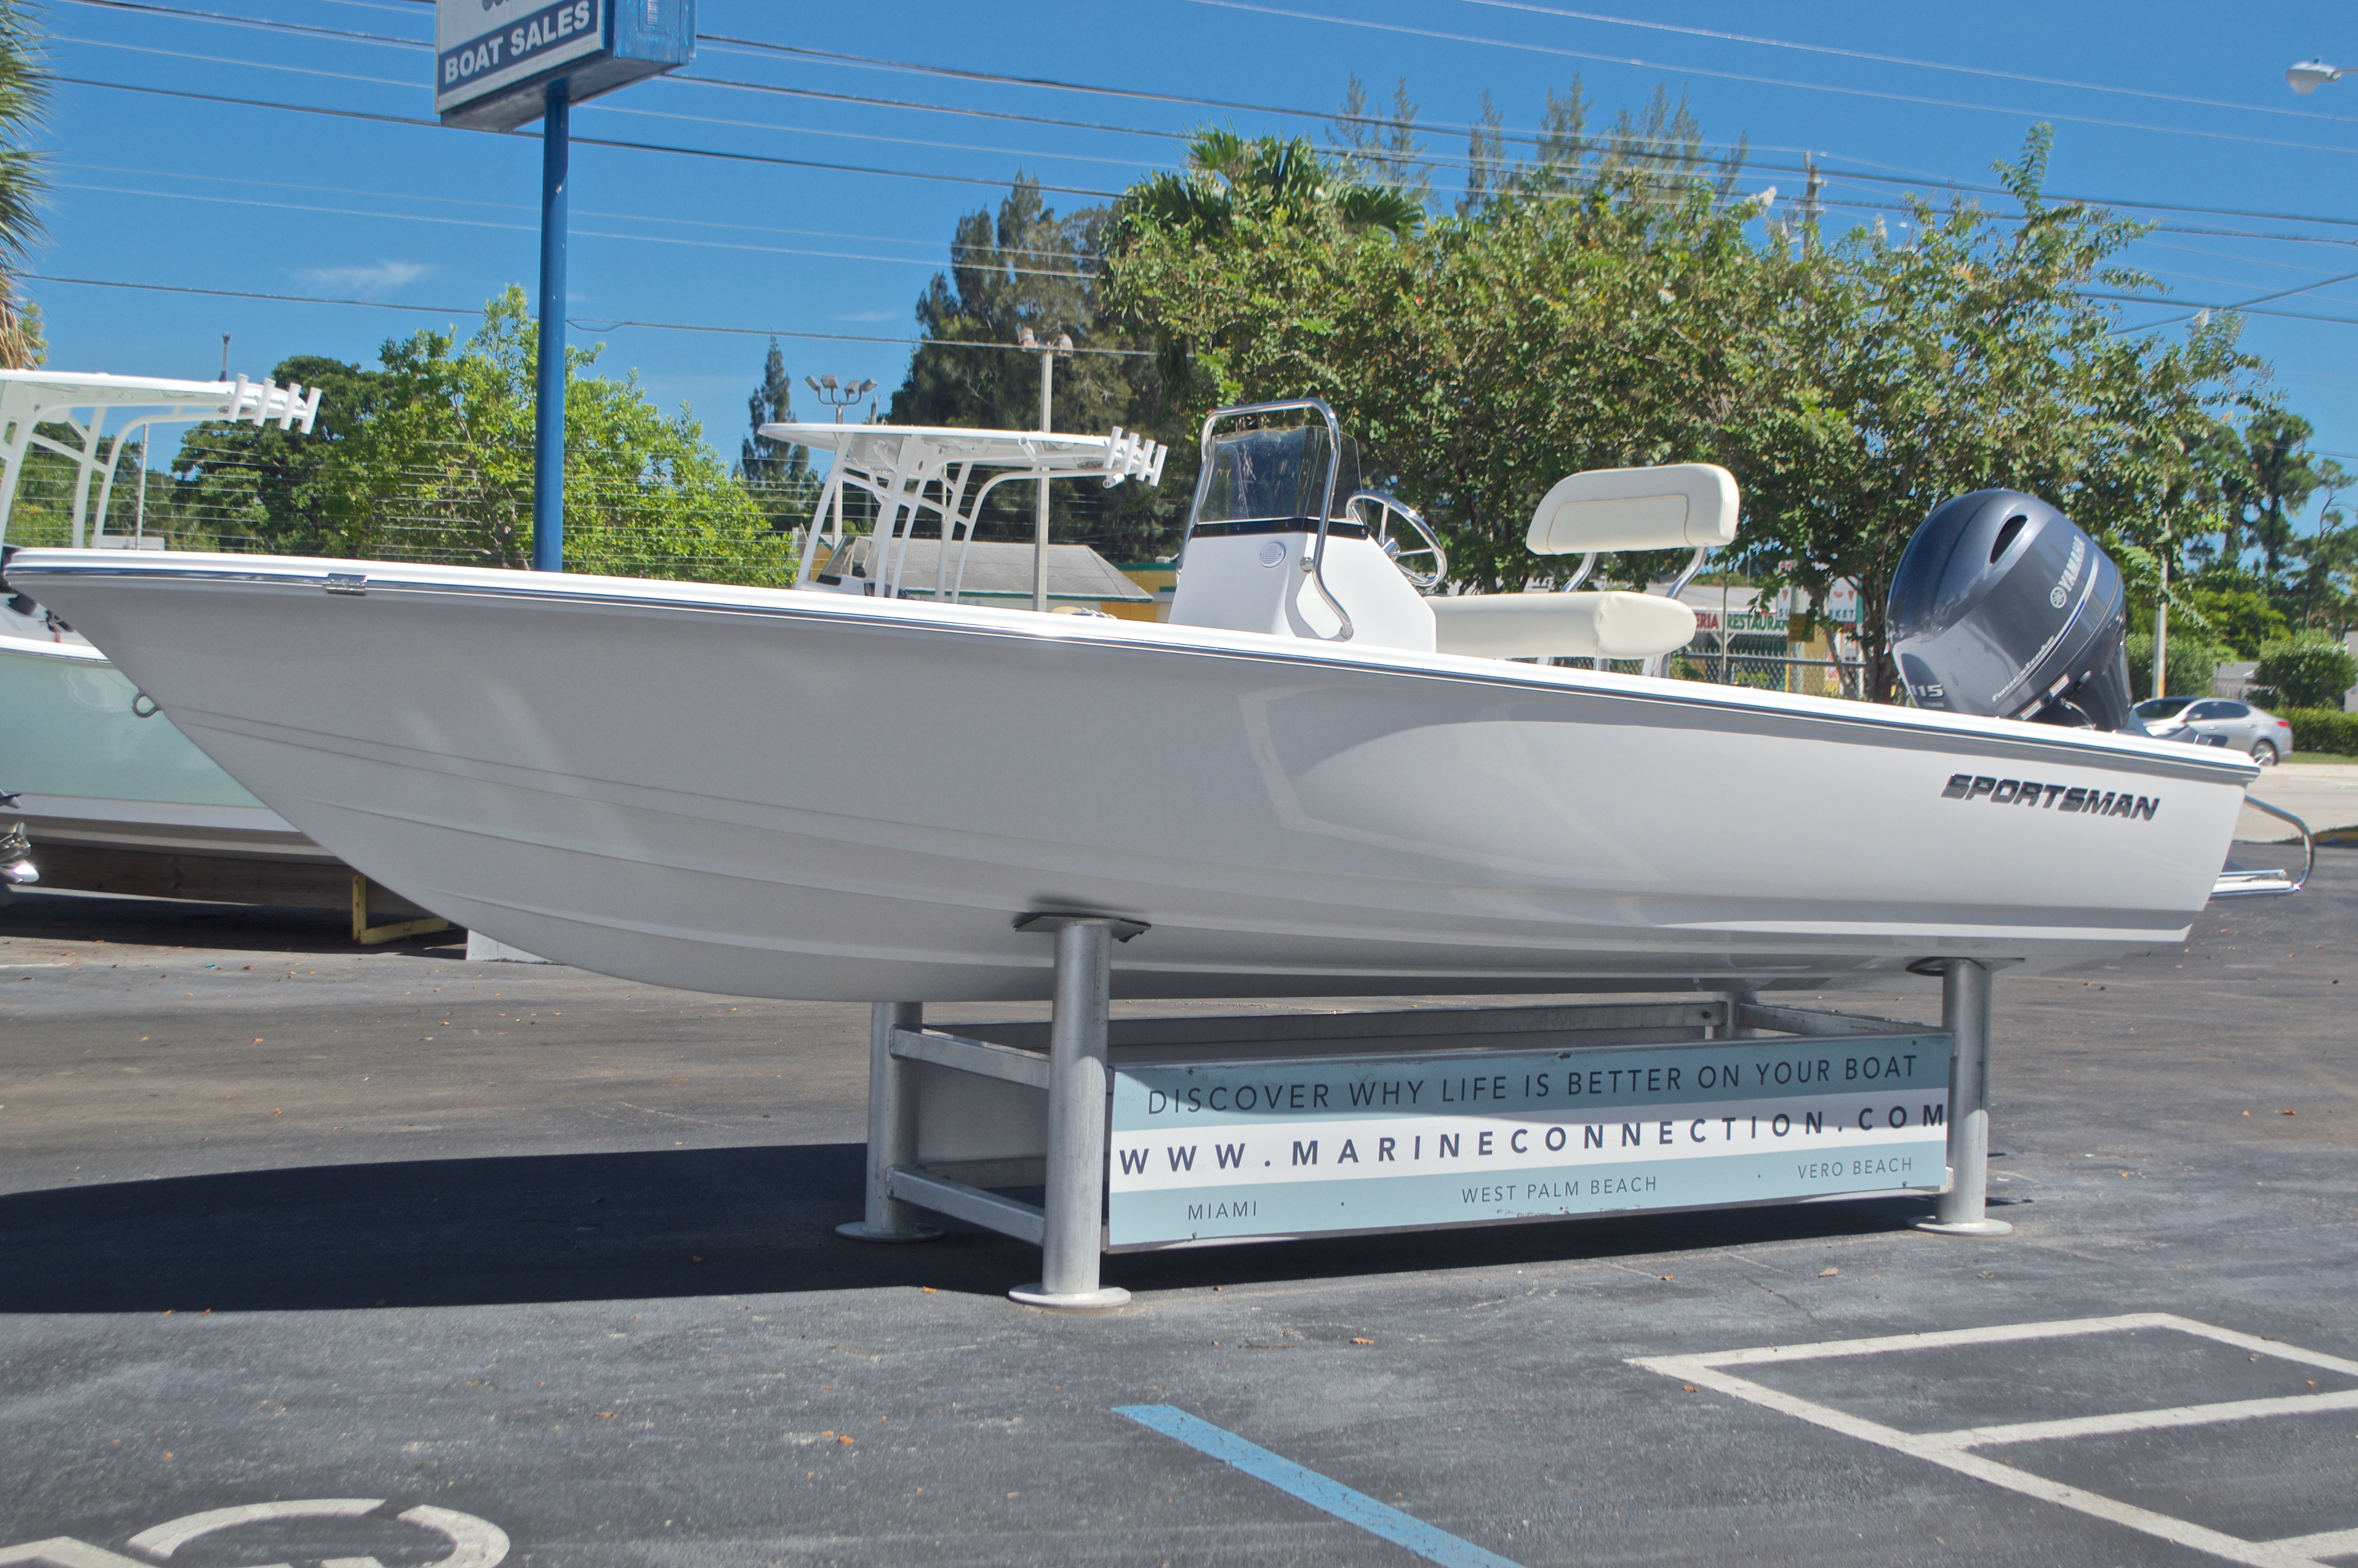 Thumbnail 3 for New 2017 Sportsman 20 Island Bay boat for sale in Vero Beach, FL